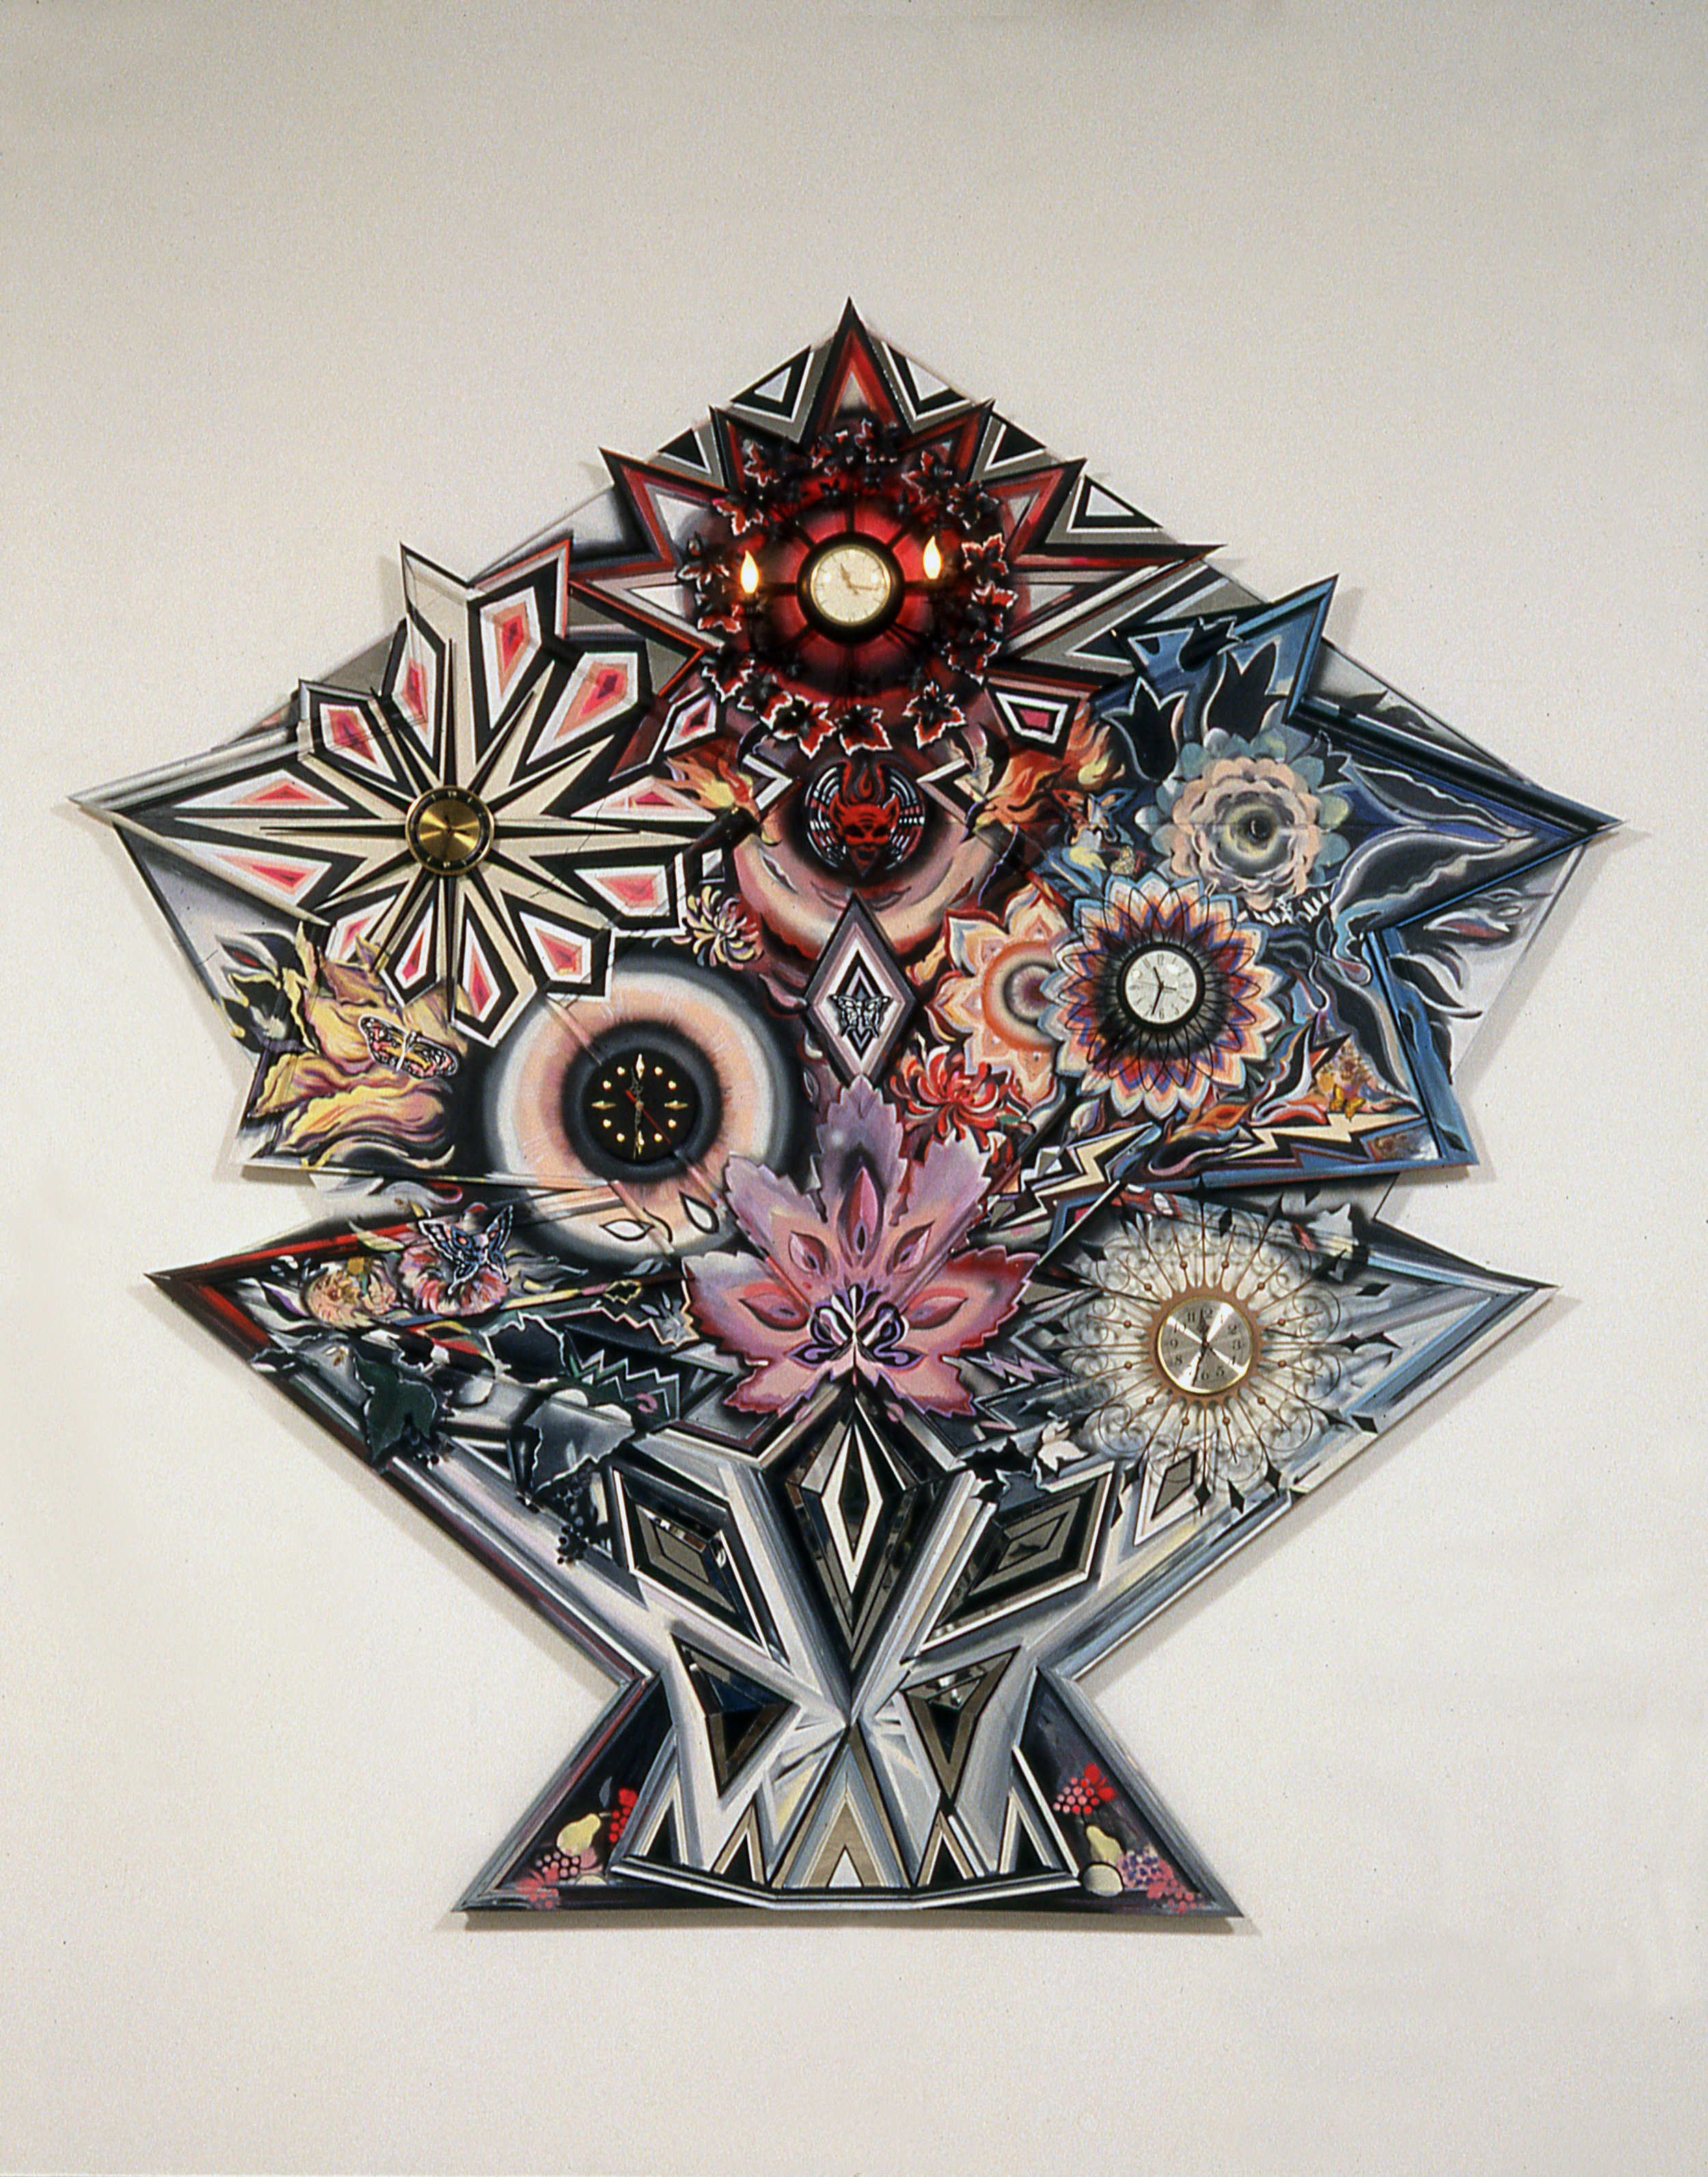 """Flowers of Fate,  1990-91  Acrylic, wood molding, plexiglass, mirror, found clocks and electric lights on wood panel  116"""" x 114 1/2"""" x 7"""""""